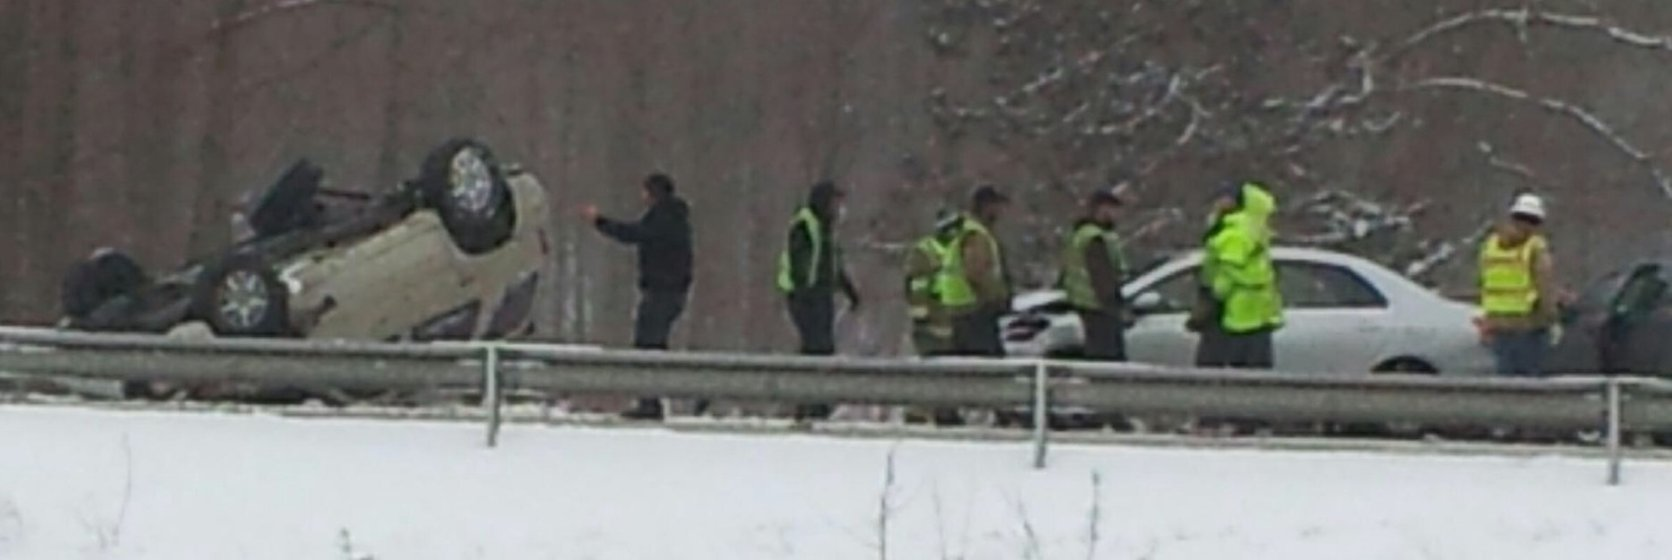 I-79 Southbound closed by accident at McKean - Erie News Now